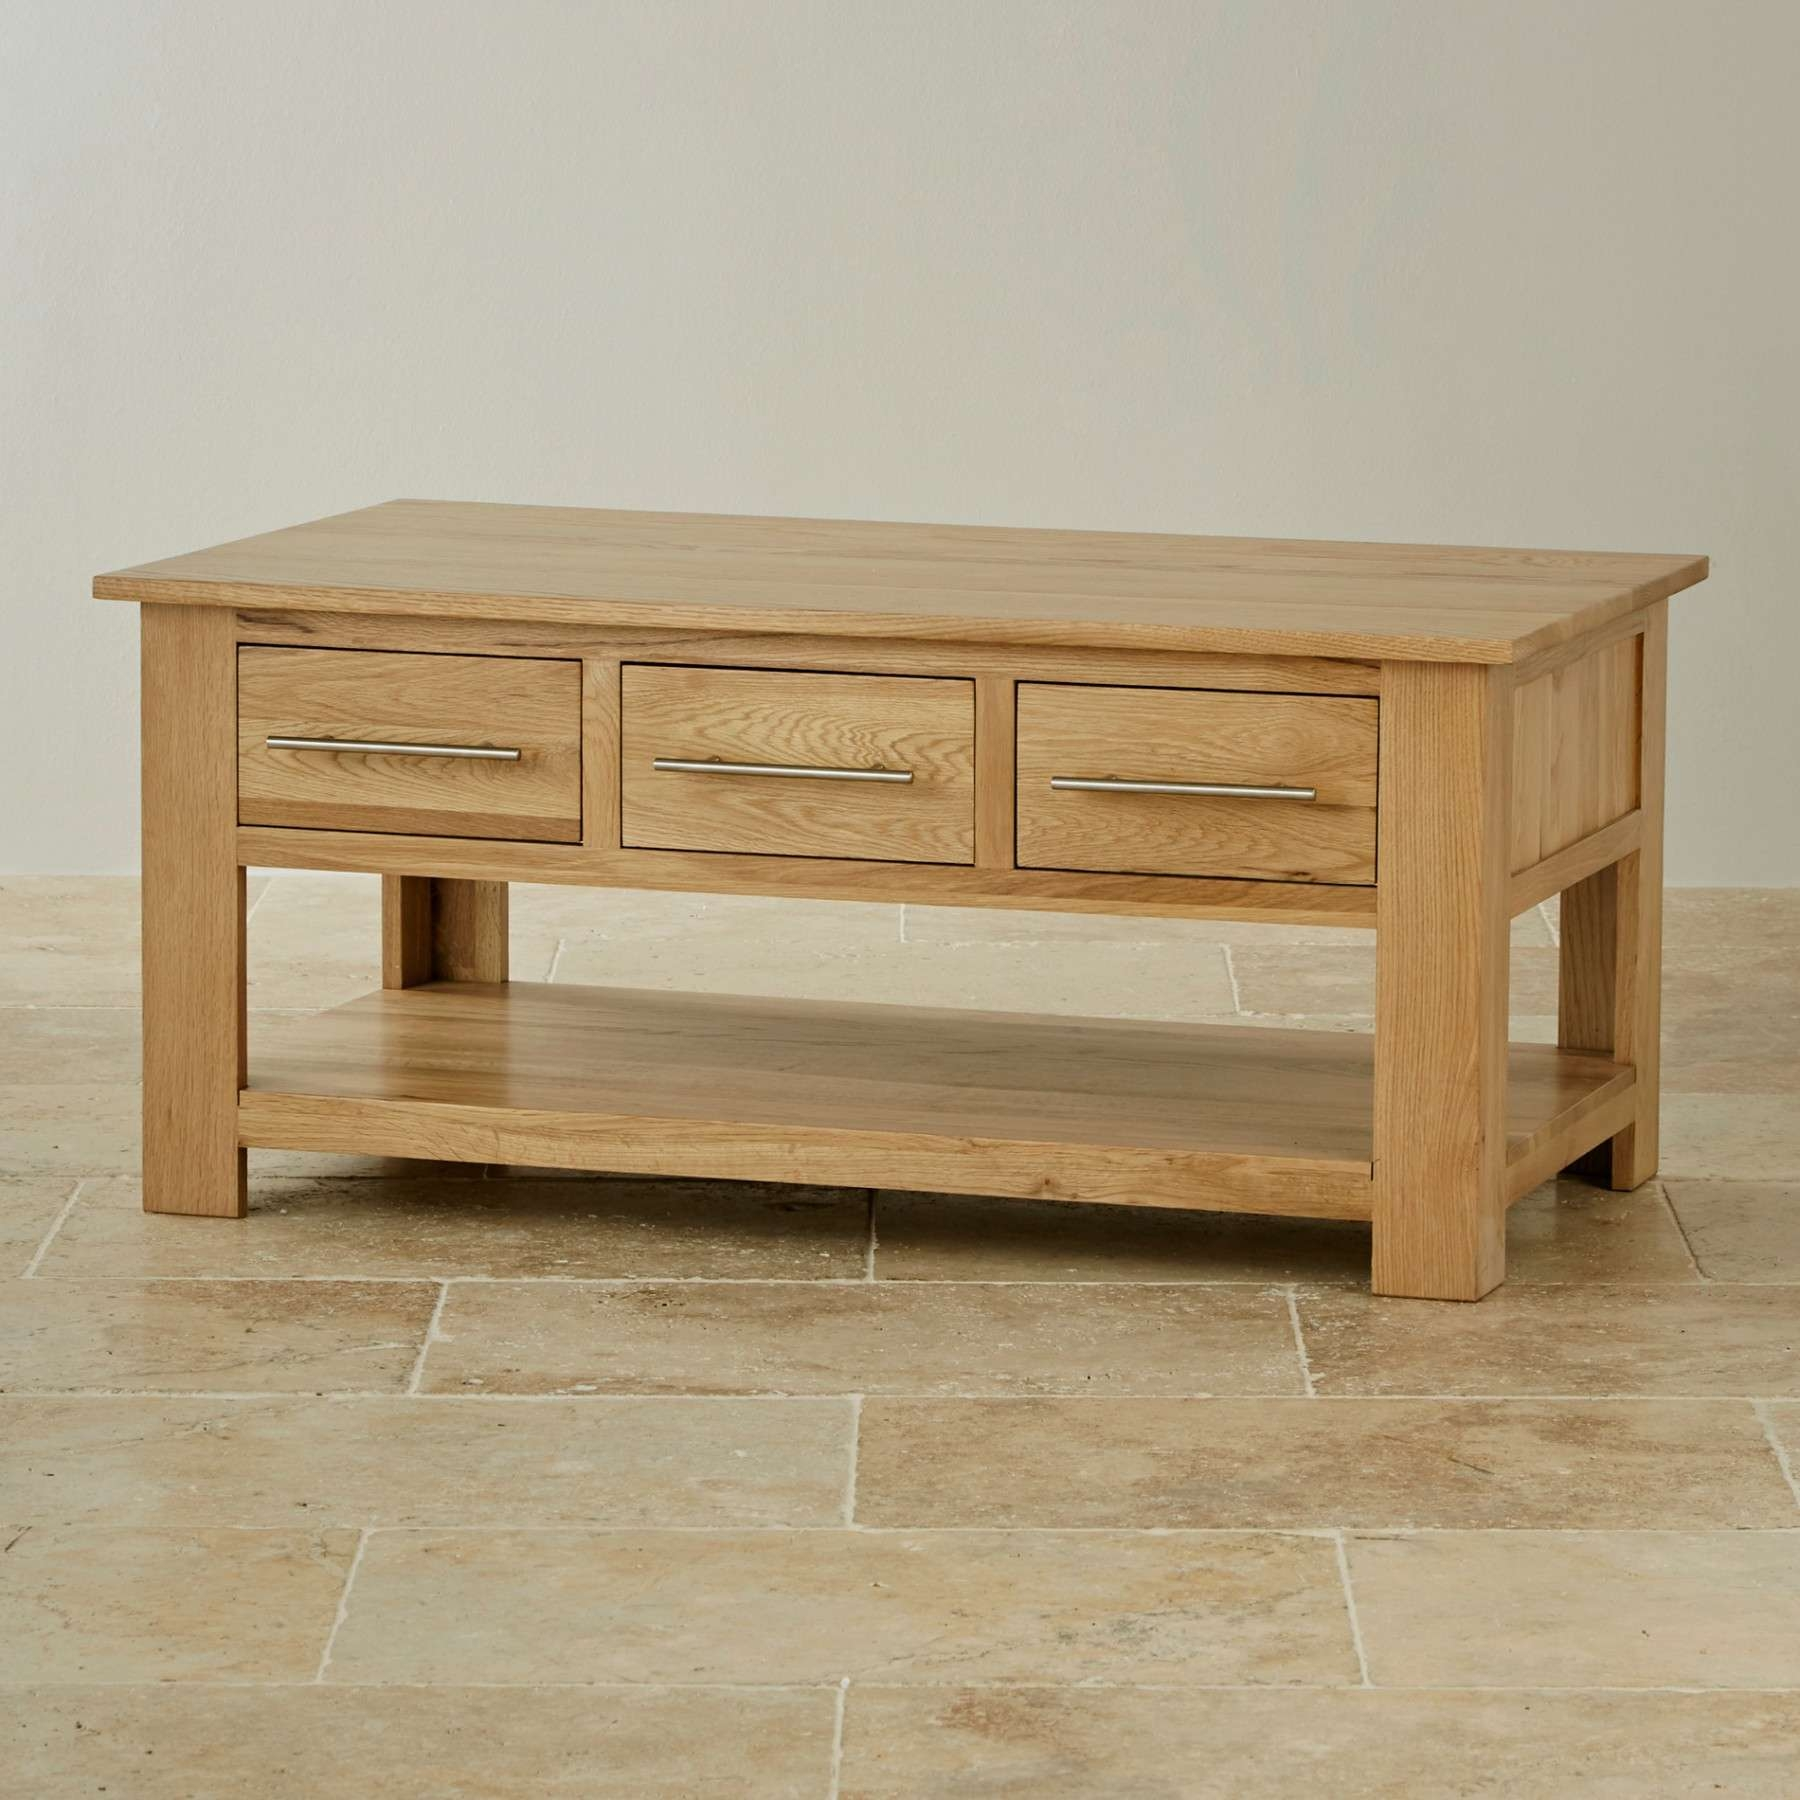 Famous Solid Oak Coffee Table With Storage For Coffee Tables (View 2 of 20)